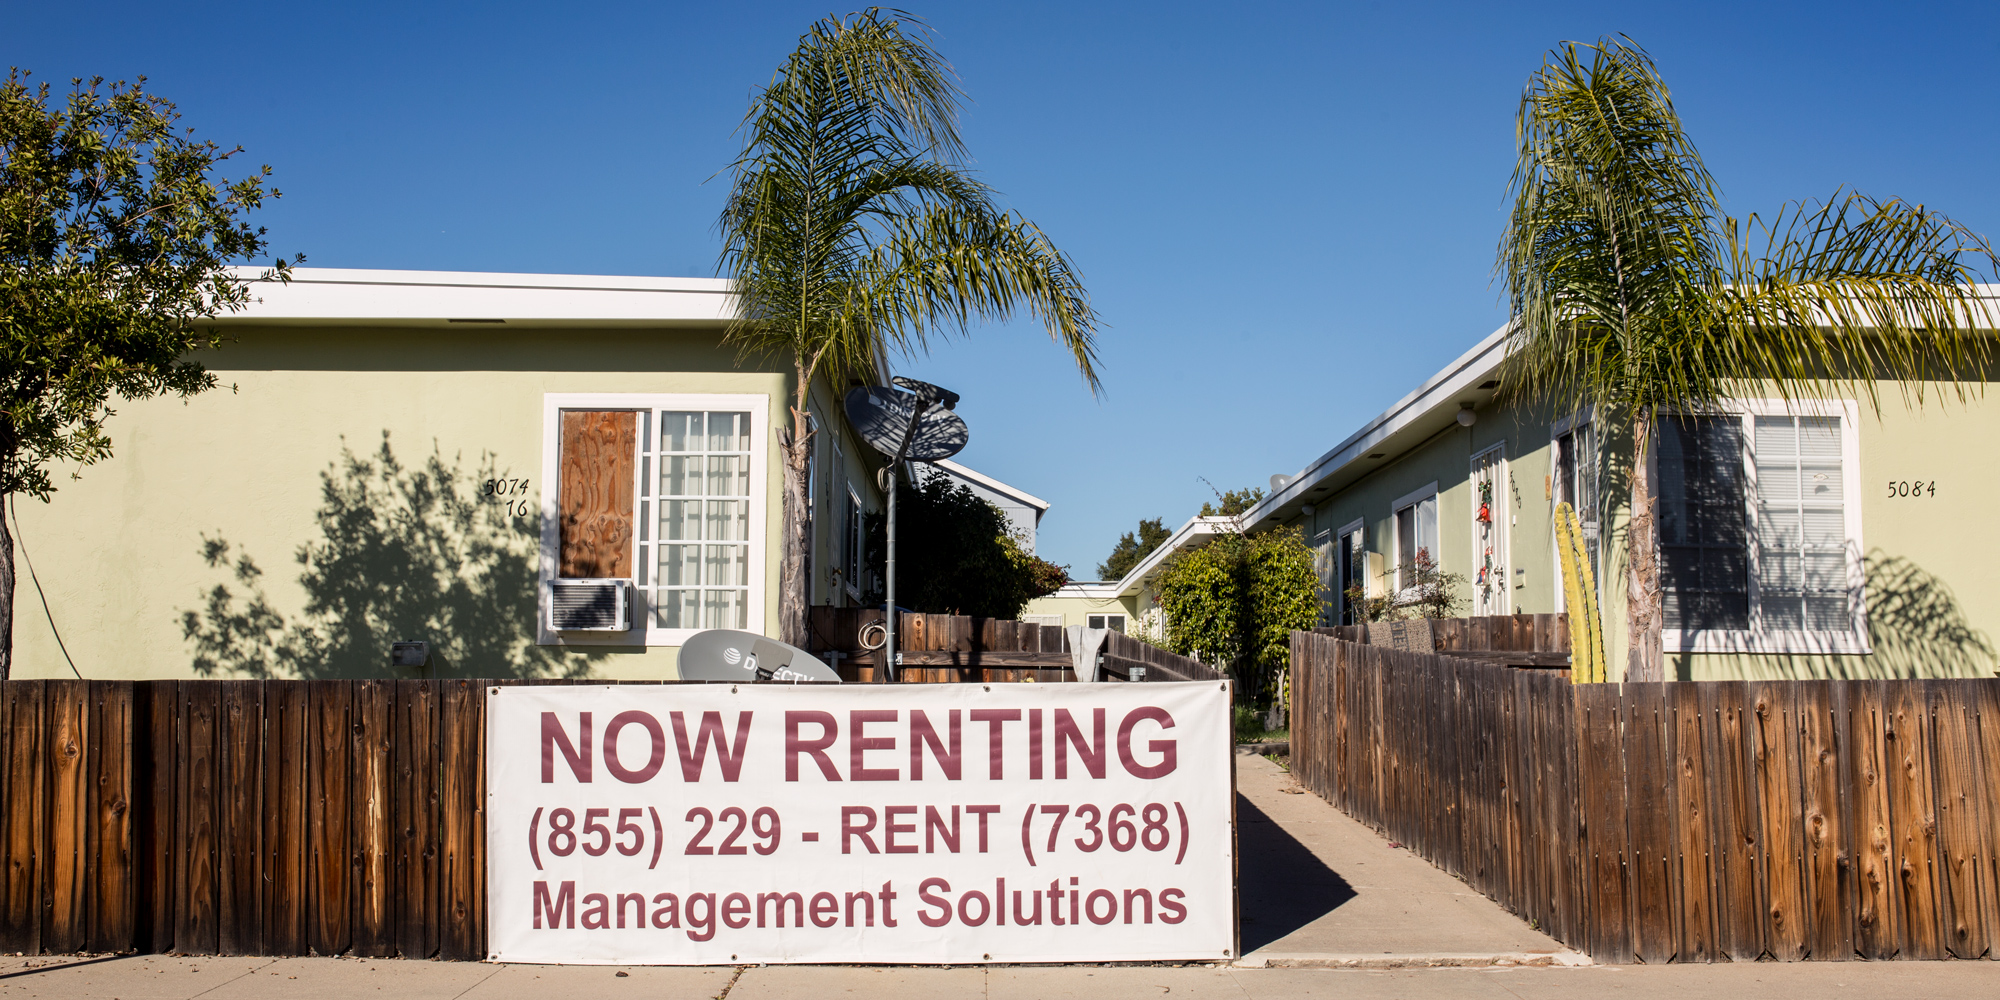 More than half of San Diego County renters are burdened by housing costs